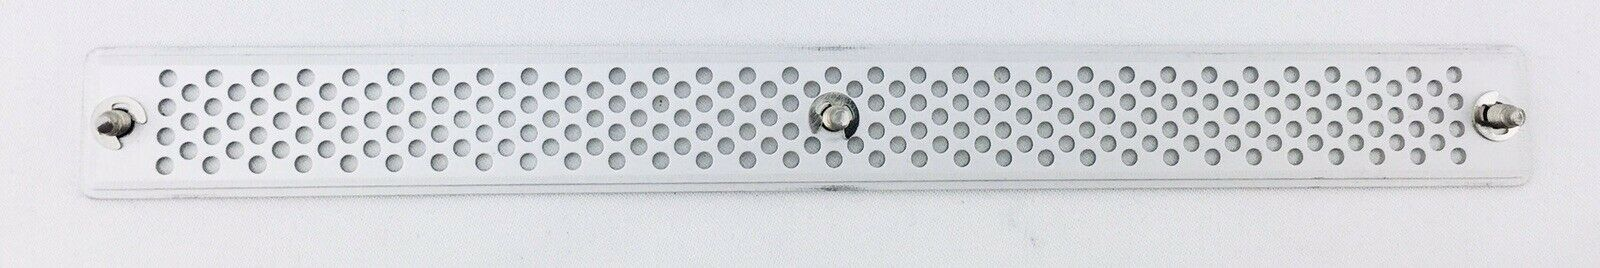 "OEM iMac 27"" A1312 (2009/2010/2011) Memory/RAM Access Door Cover w/ Screws"